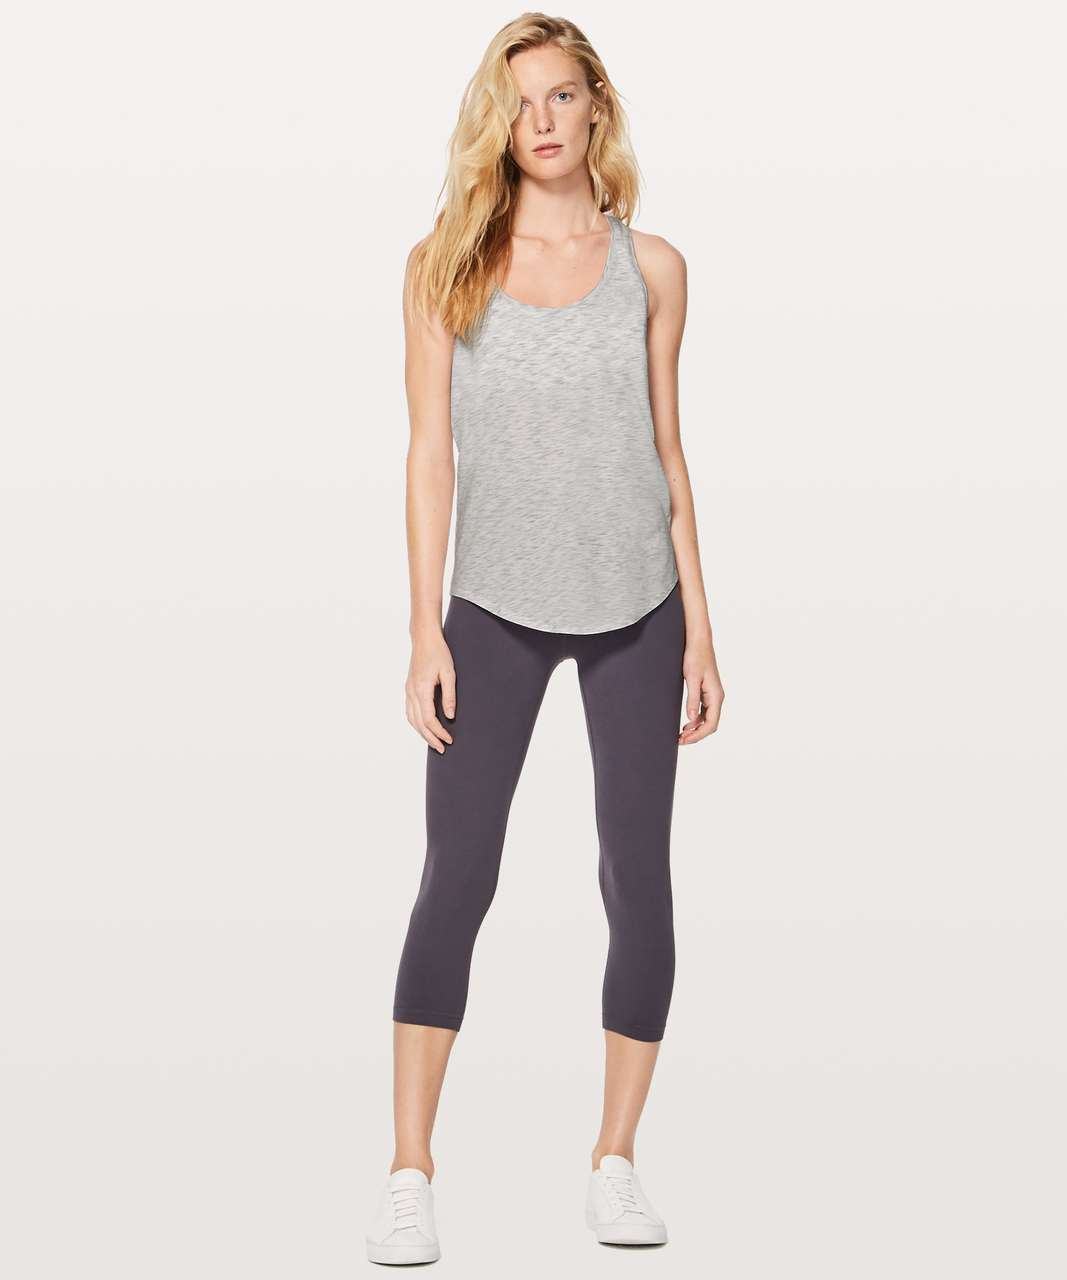 Lululemon Love Tank II - 3 Colour Space Dye Ice Grey Alpine White